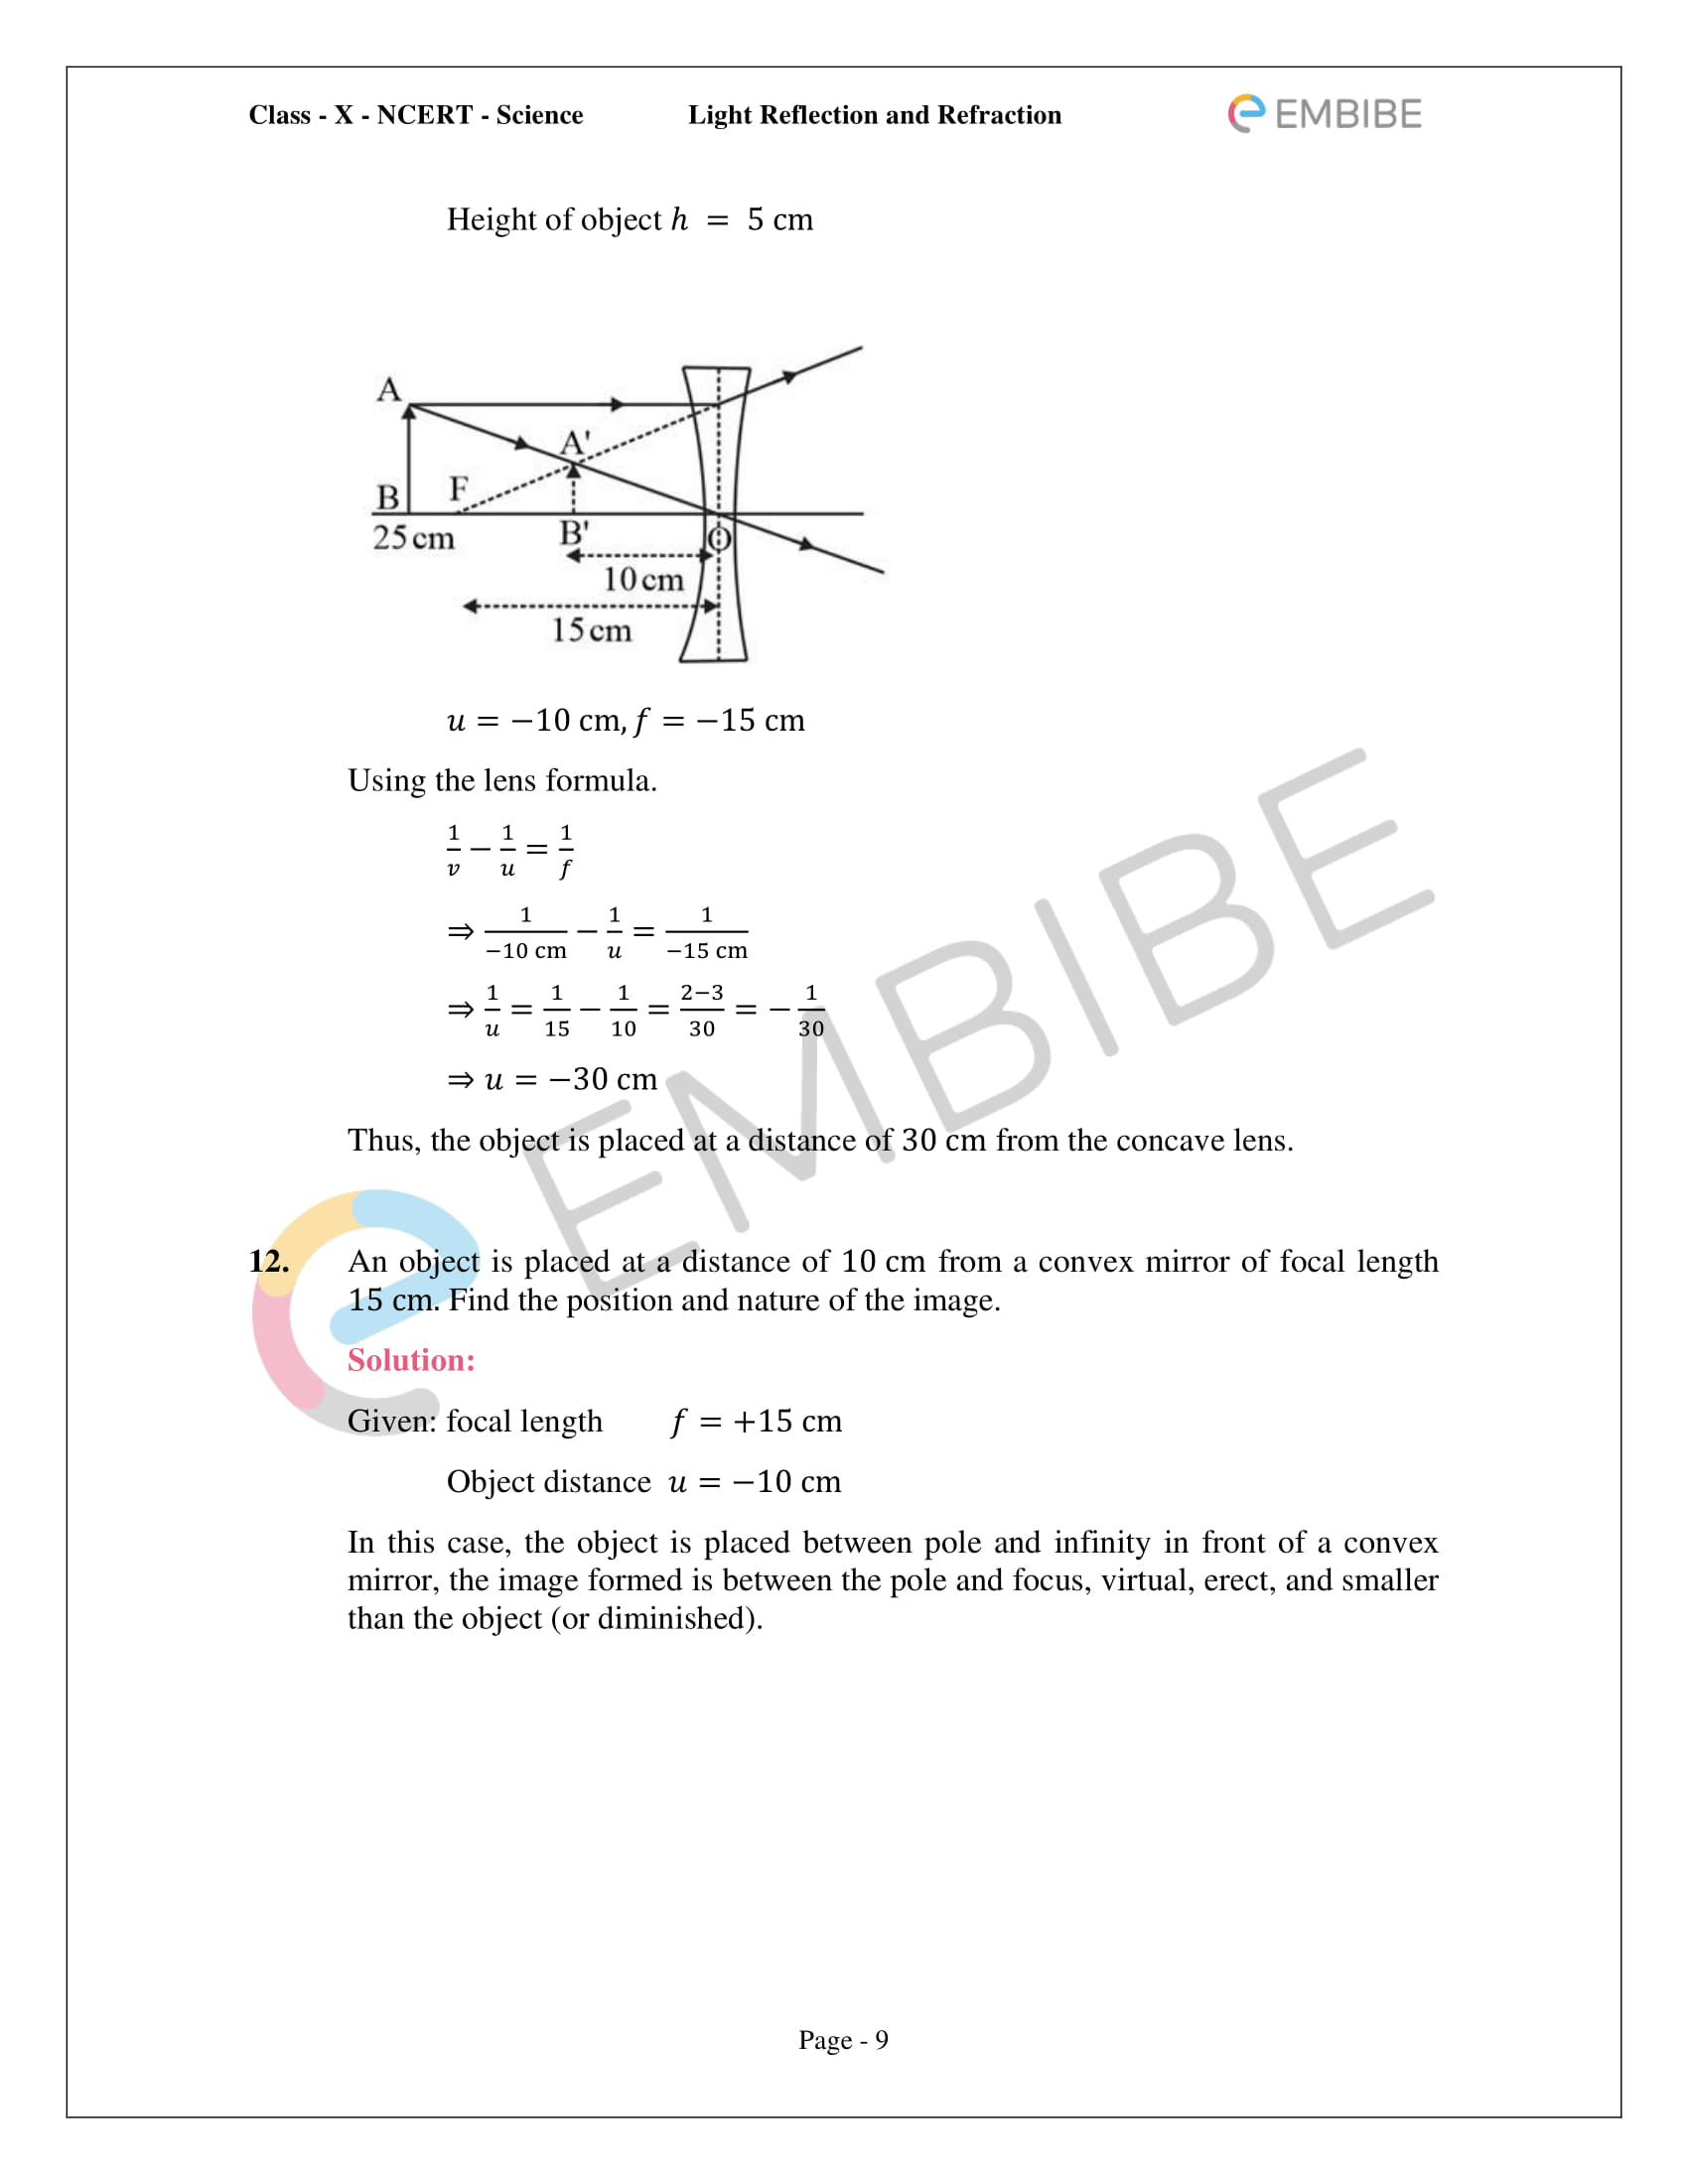 Cbse Ncert Solutions For Class 10 Science Chapter 10 Light Reflection And Refraction